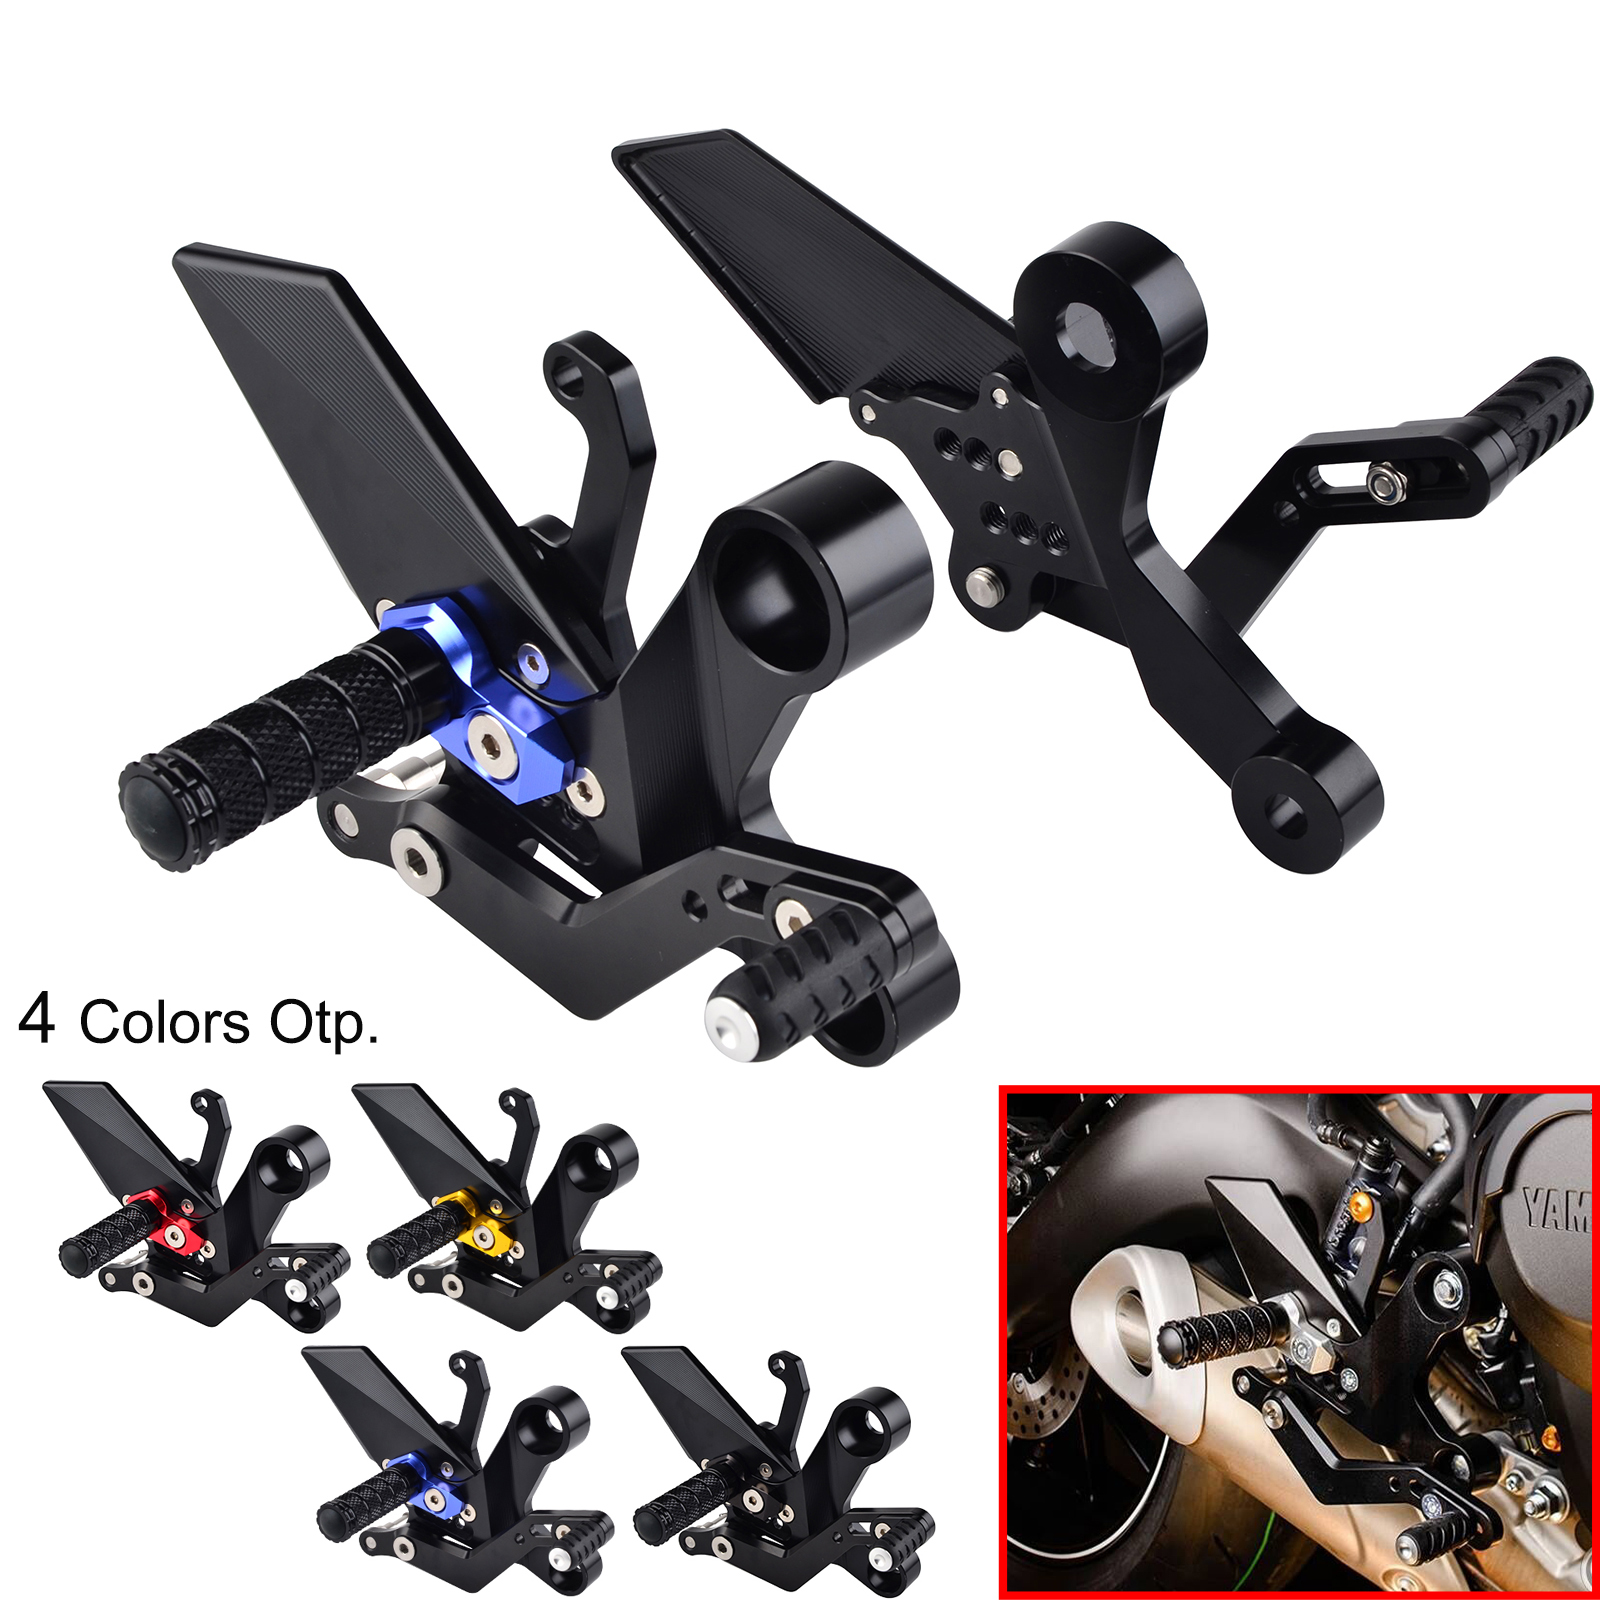 Motorcycle Adjustable Rearset Footrest Foot Pegs Rear Sets For Yamaha MT-09 MT09 MT 09 Tracer XSR900 2013 - 2015 2016 2017 2018